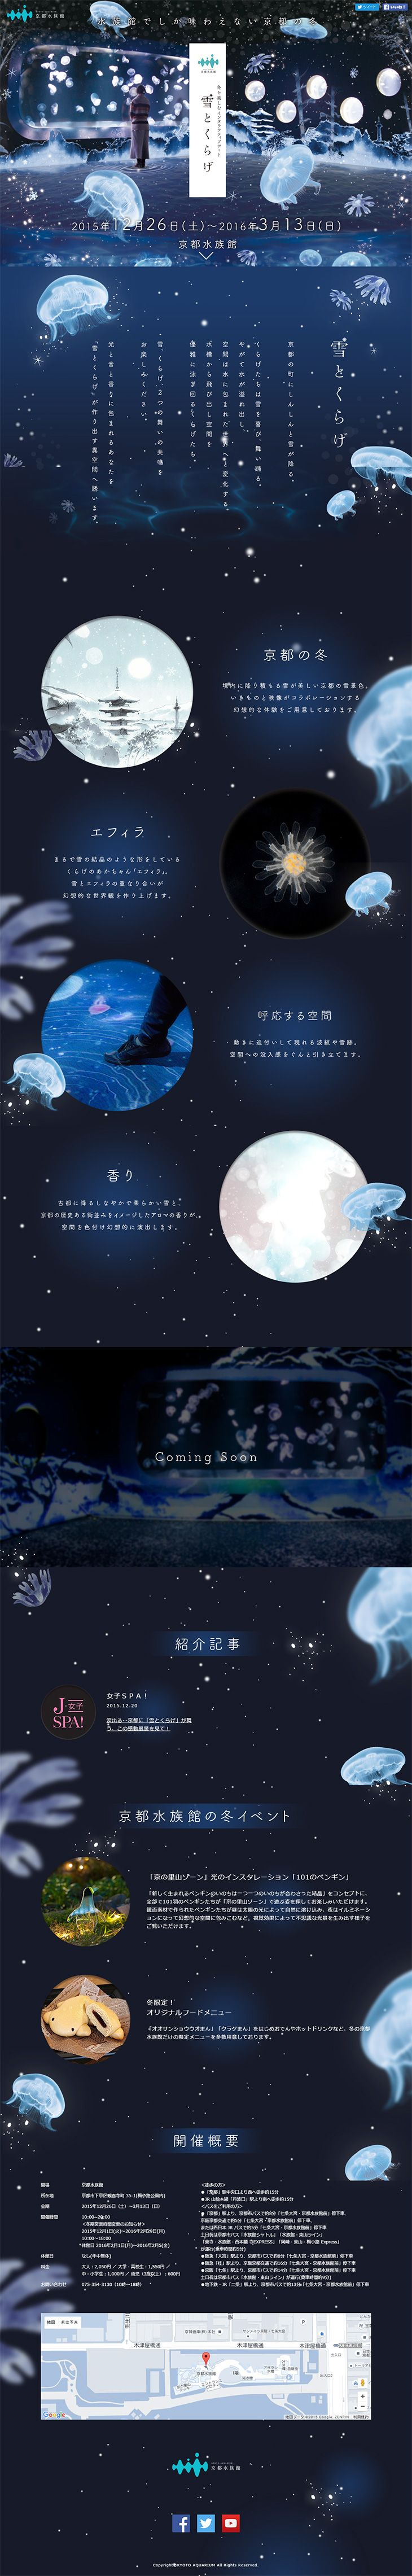 I know this is web but I like the design of the circles for other things 배경 분위기가 몽환적이다. 근데 이 분위기에 맞게 ui를 디자인해서 보기에 나쁘지않다